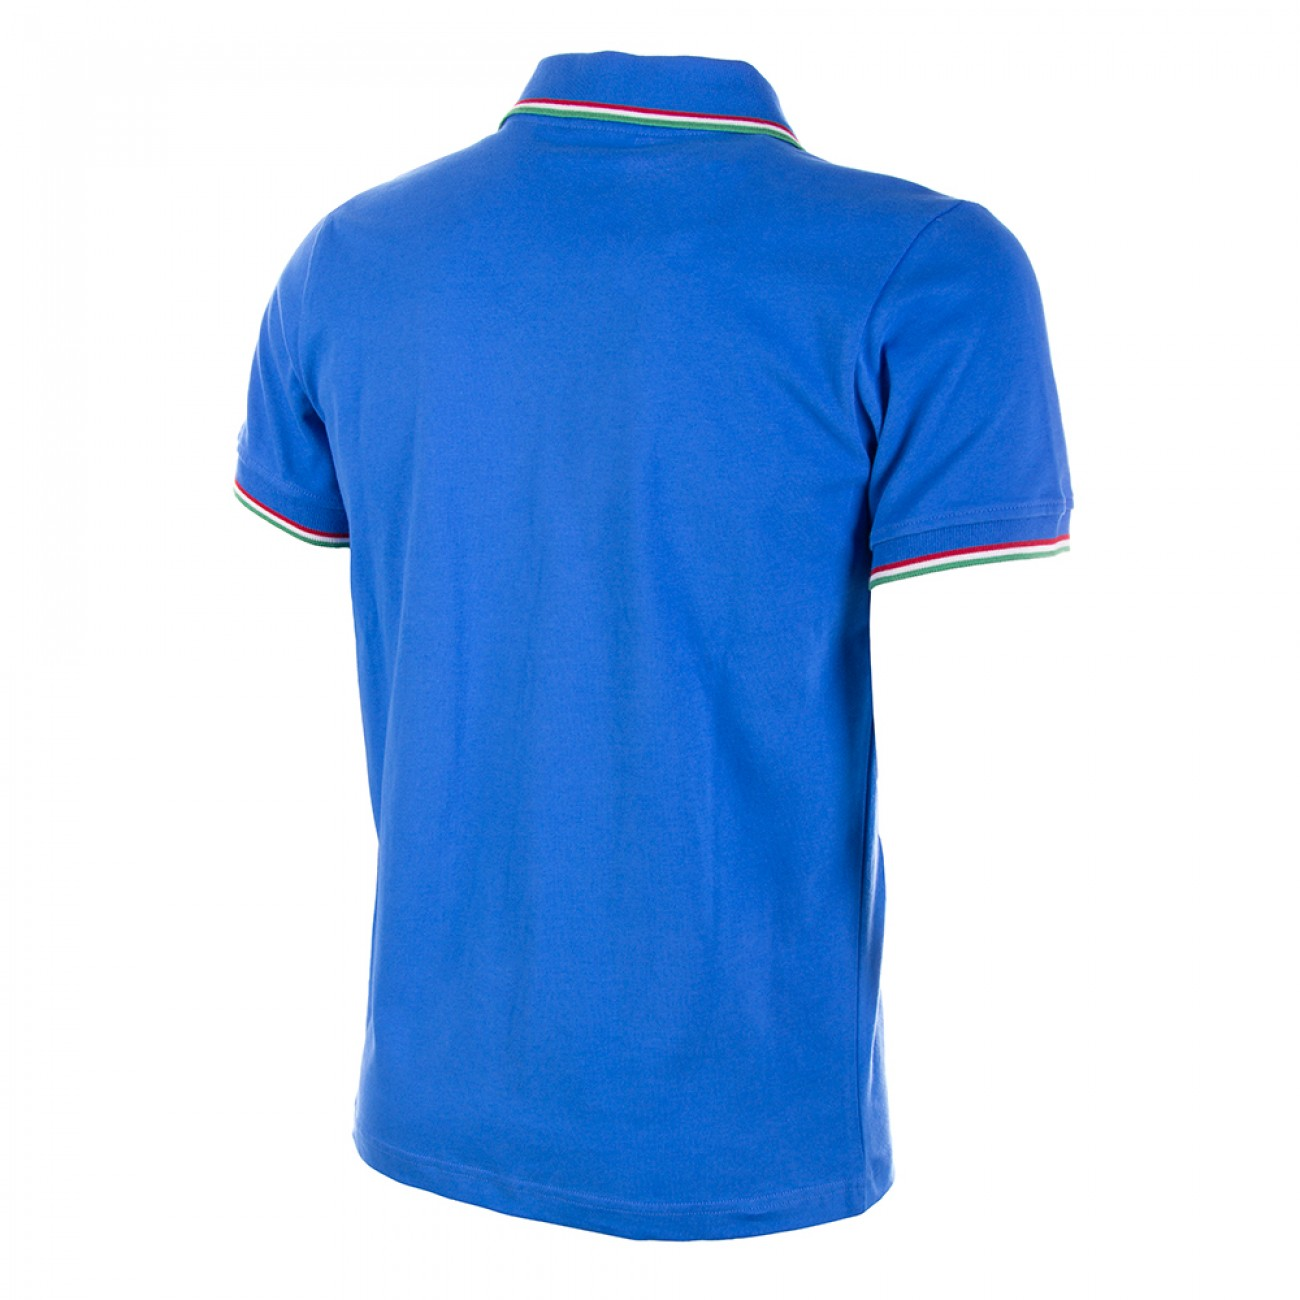 0f3c134444 Italy s classic World Cup shirt in Spain 1982.